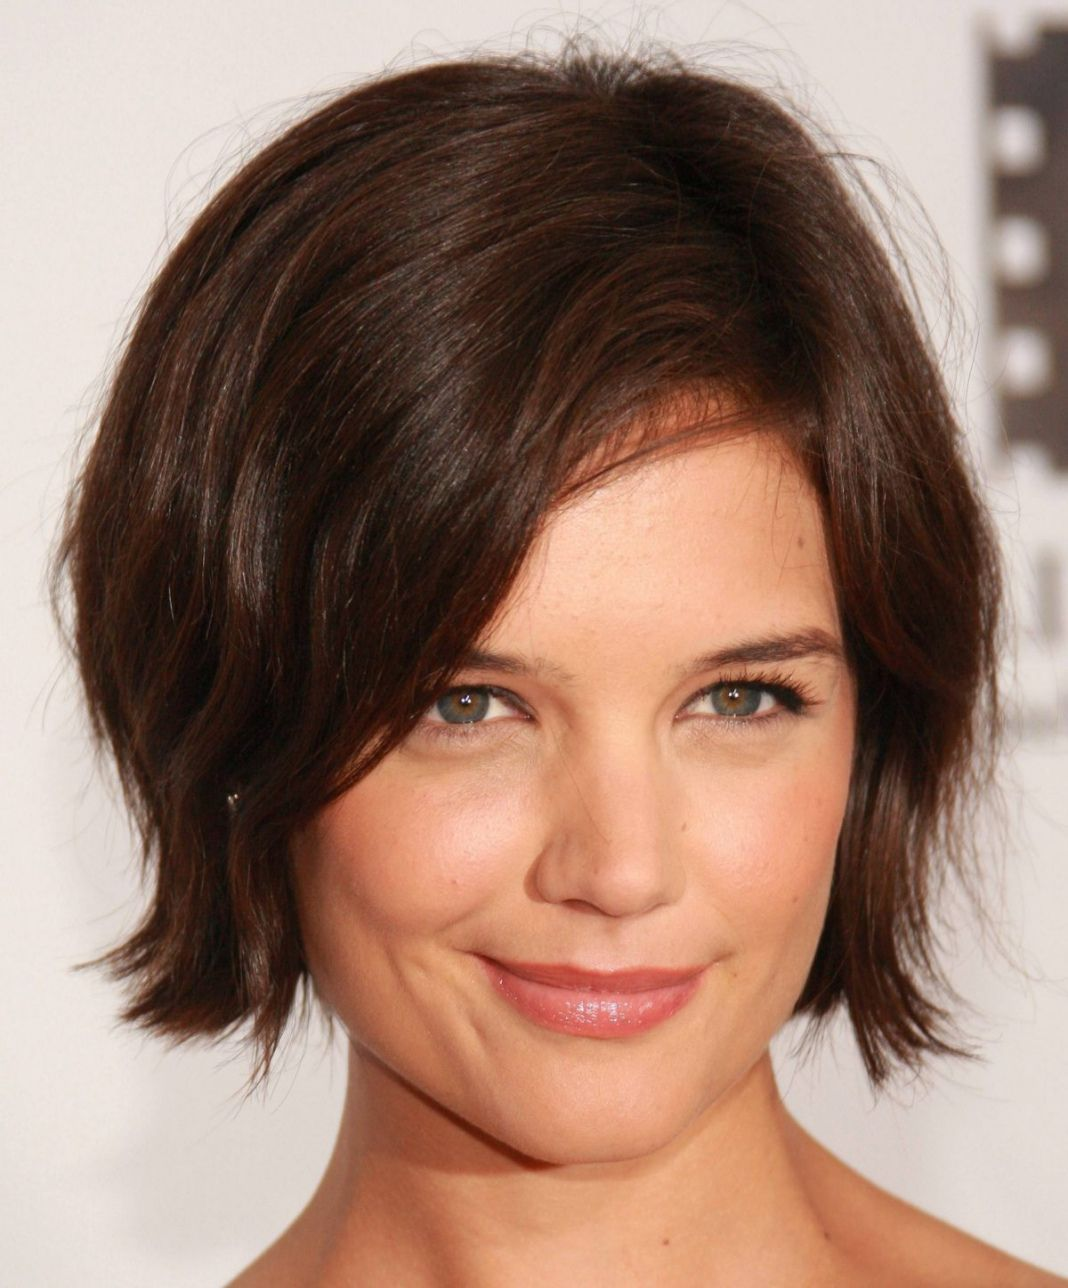 Best Short Hairstyles  Cute Hair Cut Guide For Round Face Shape by